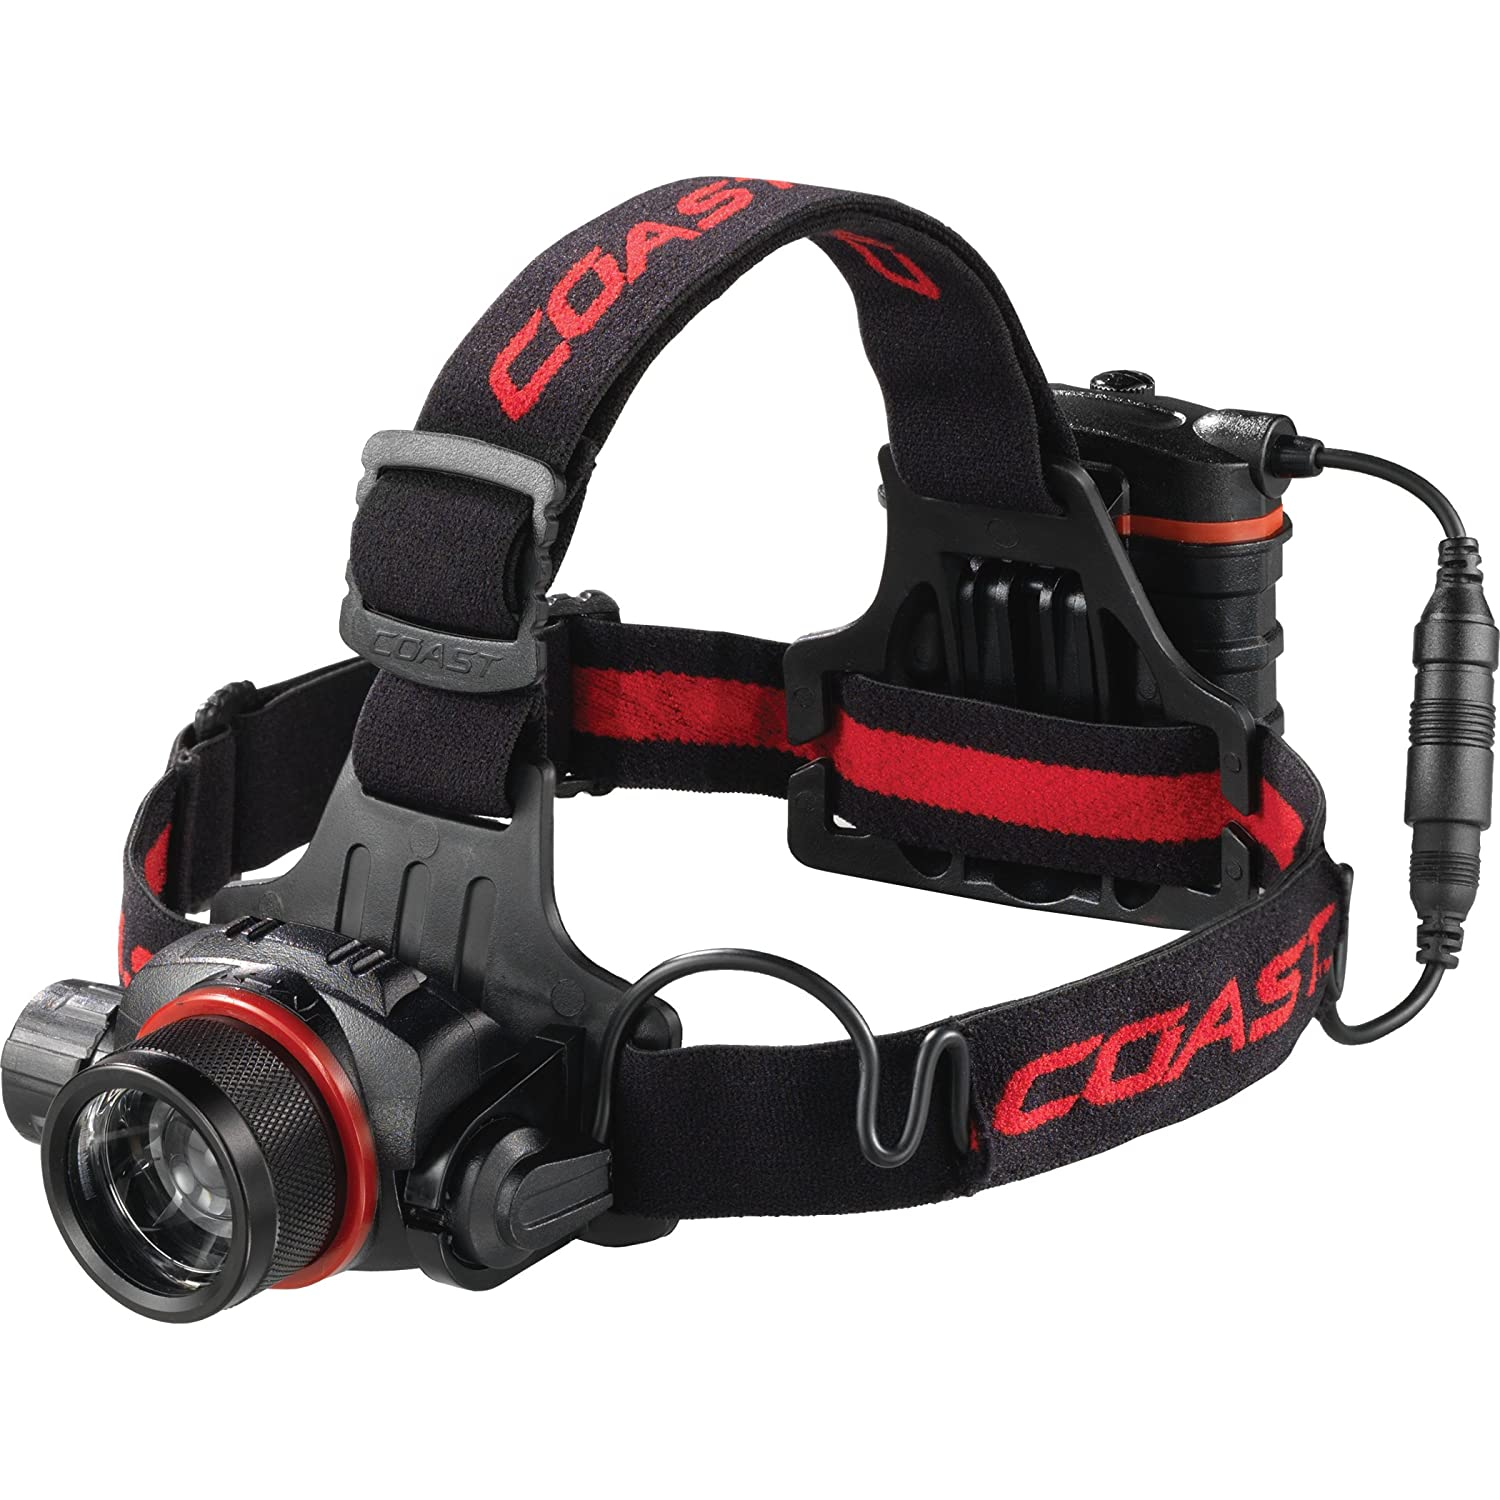 Coast HL4 19291 144 Lumens Max Beam LED Head Torch, Black, 145